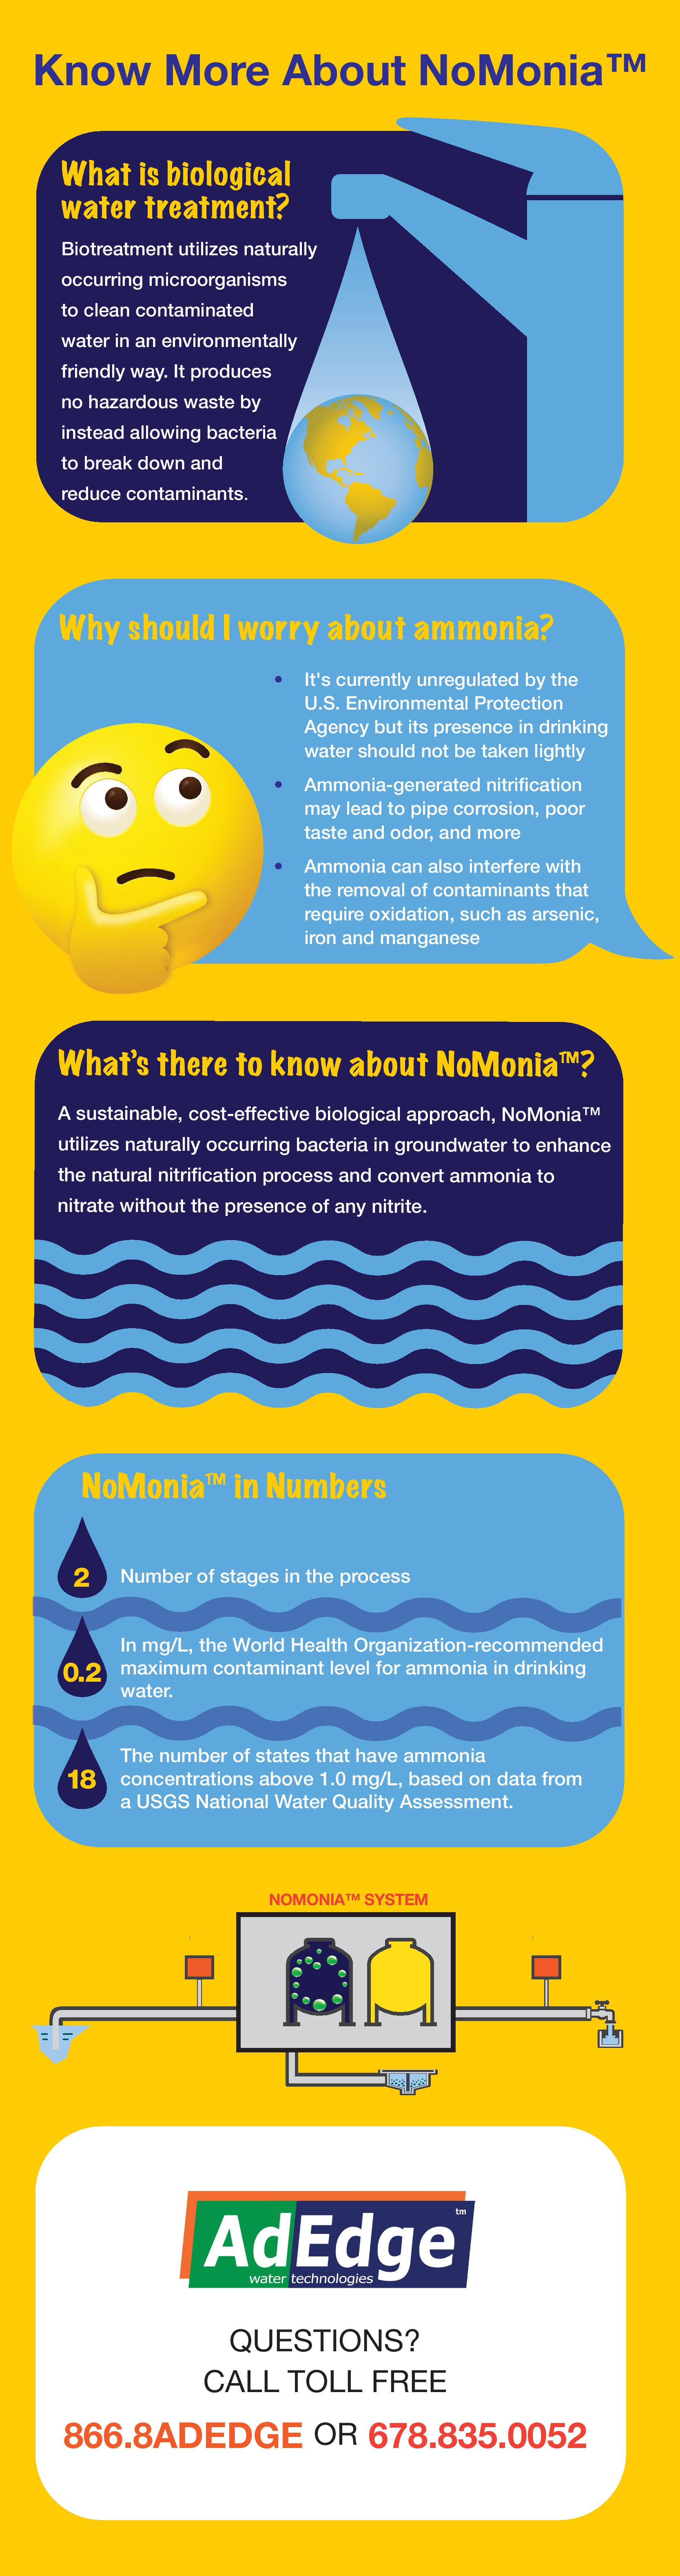 Know More About NoMonia